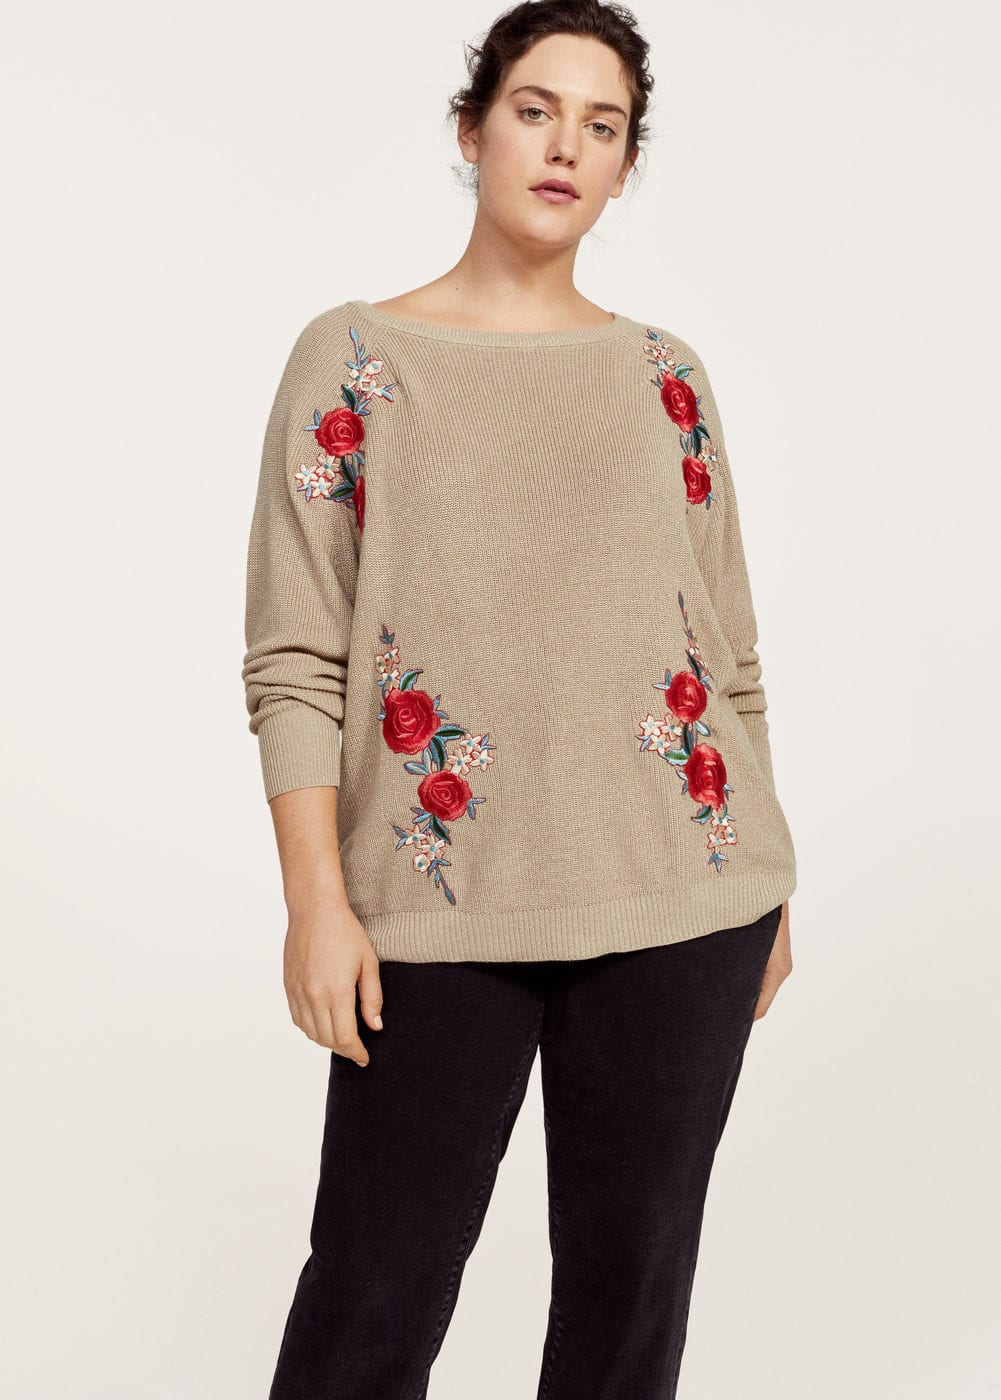 Floral embroidery metallic sweater | VIOLETA BY MANGO